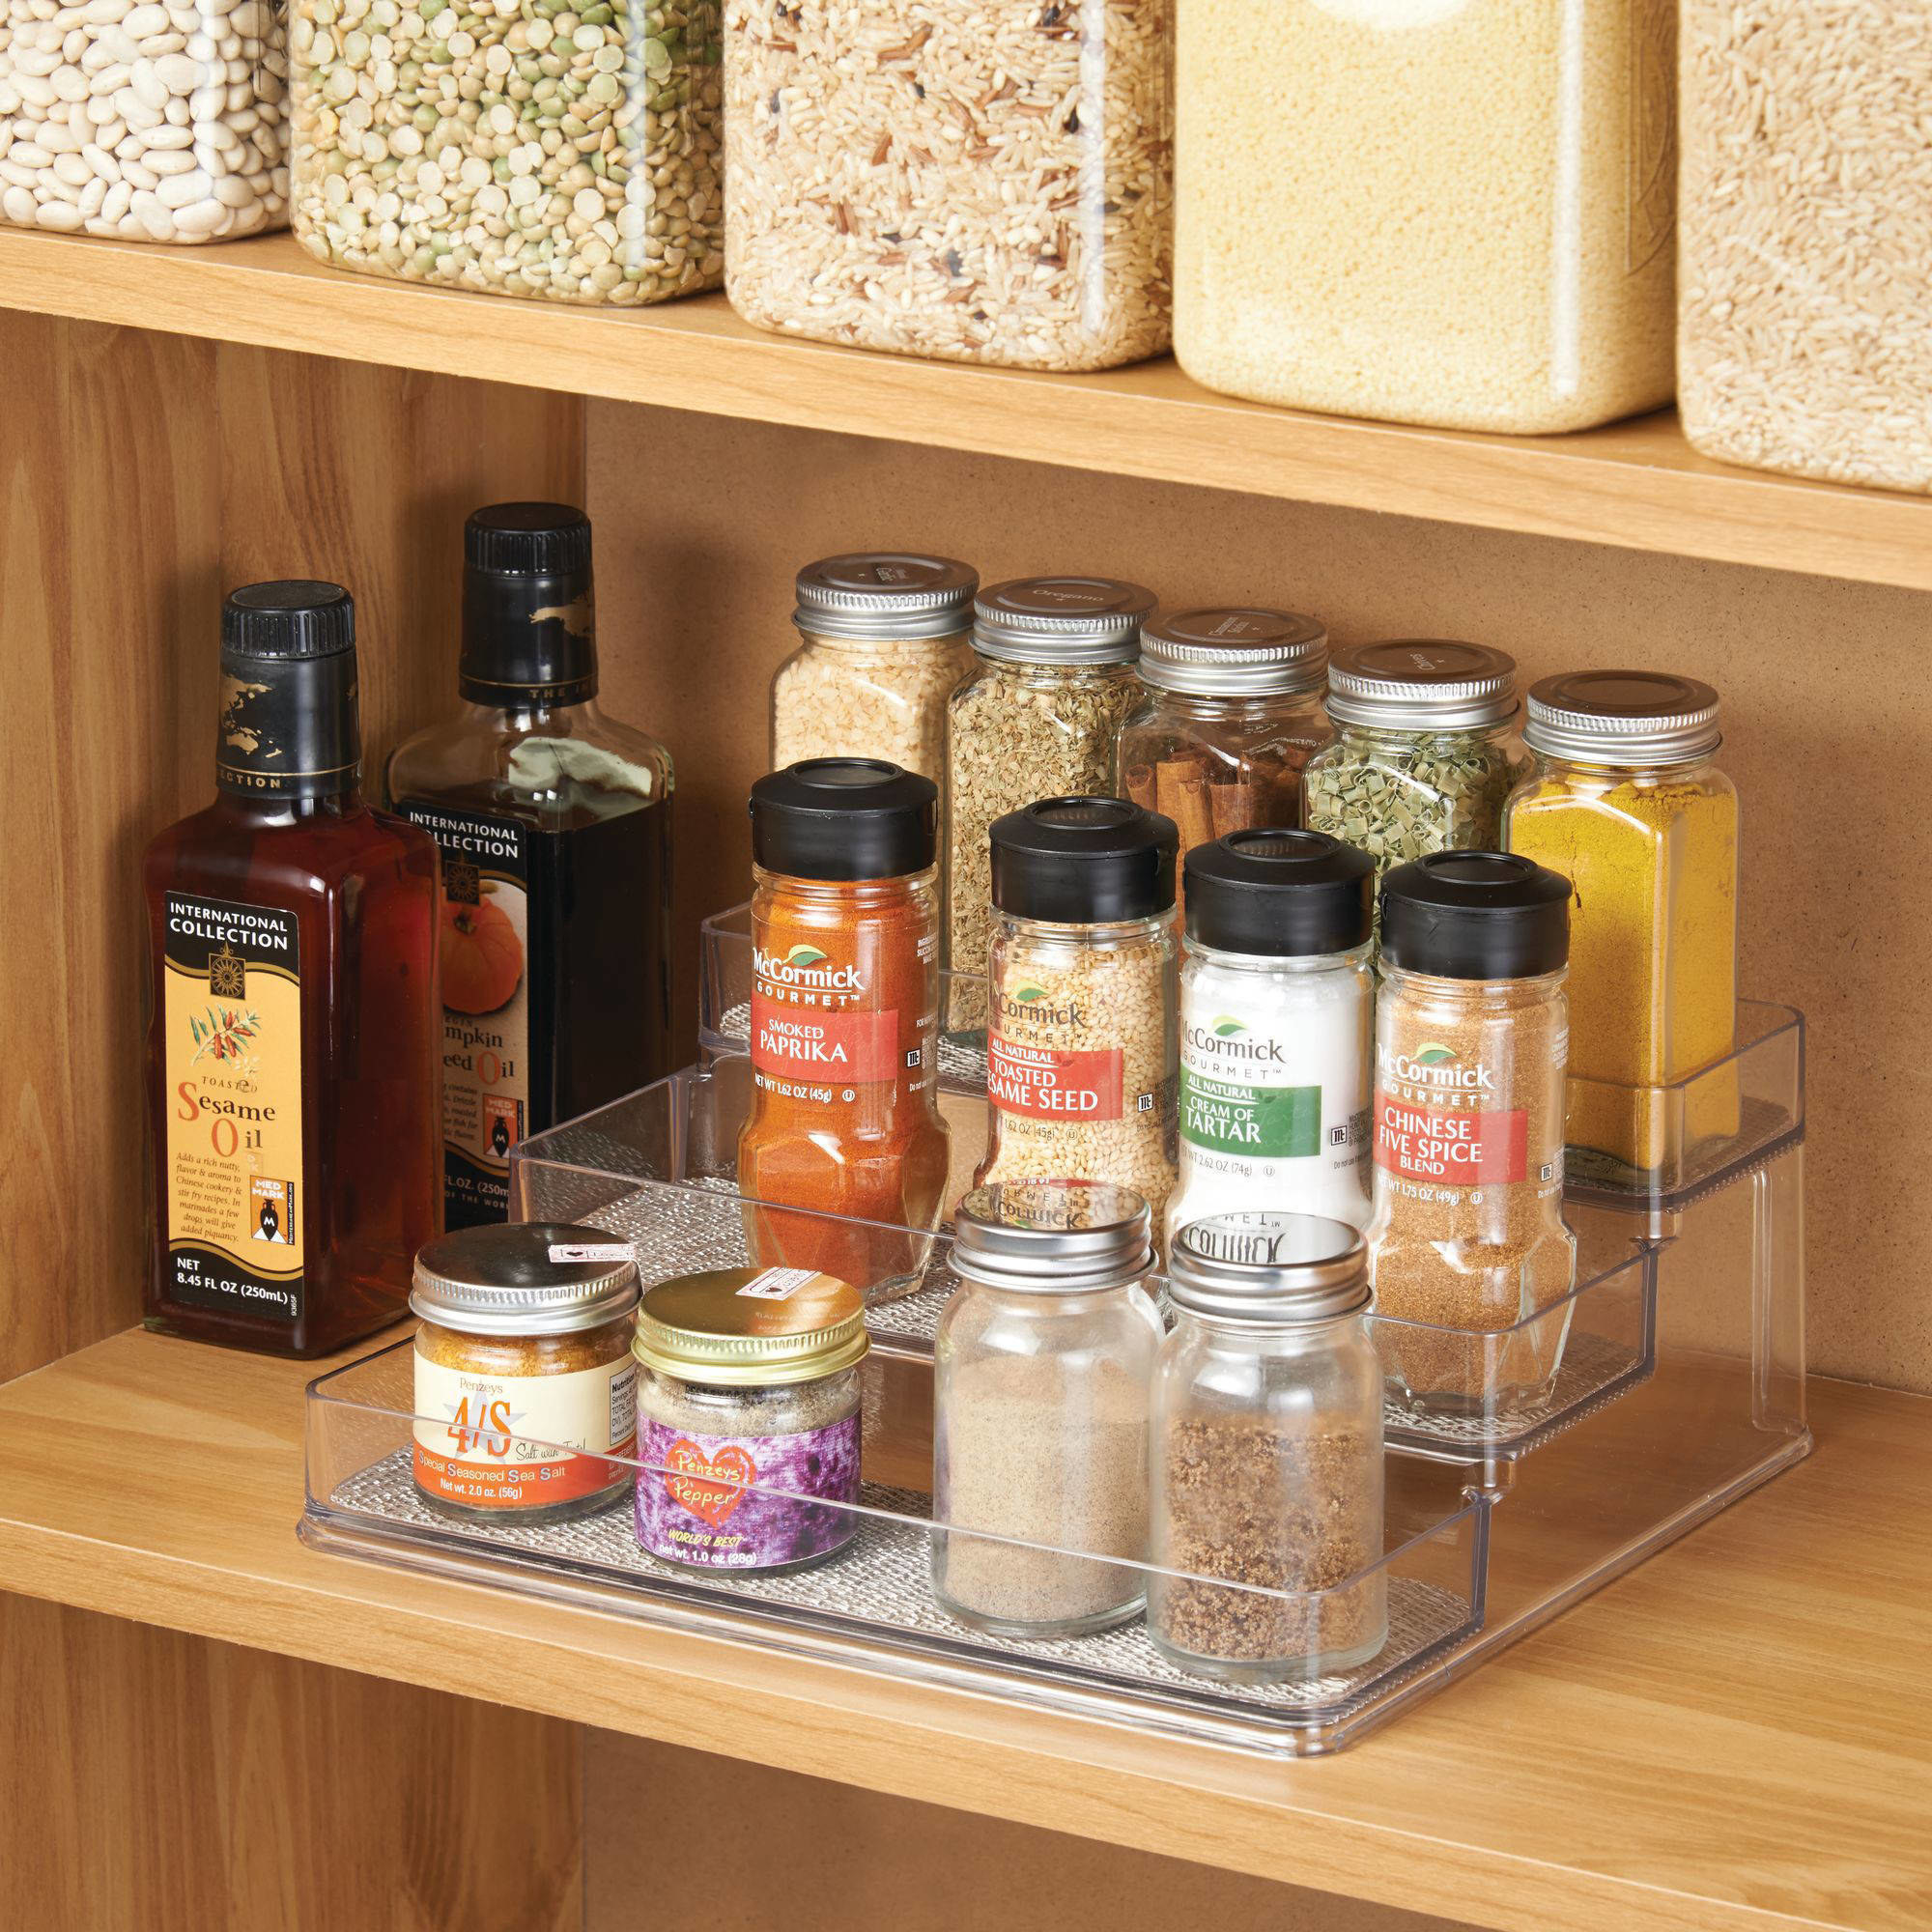 clear three-tiered spice rack organizer with jars of spices, on a shelf